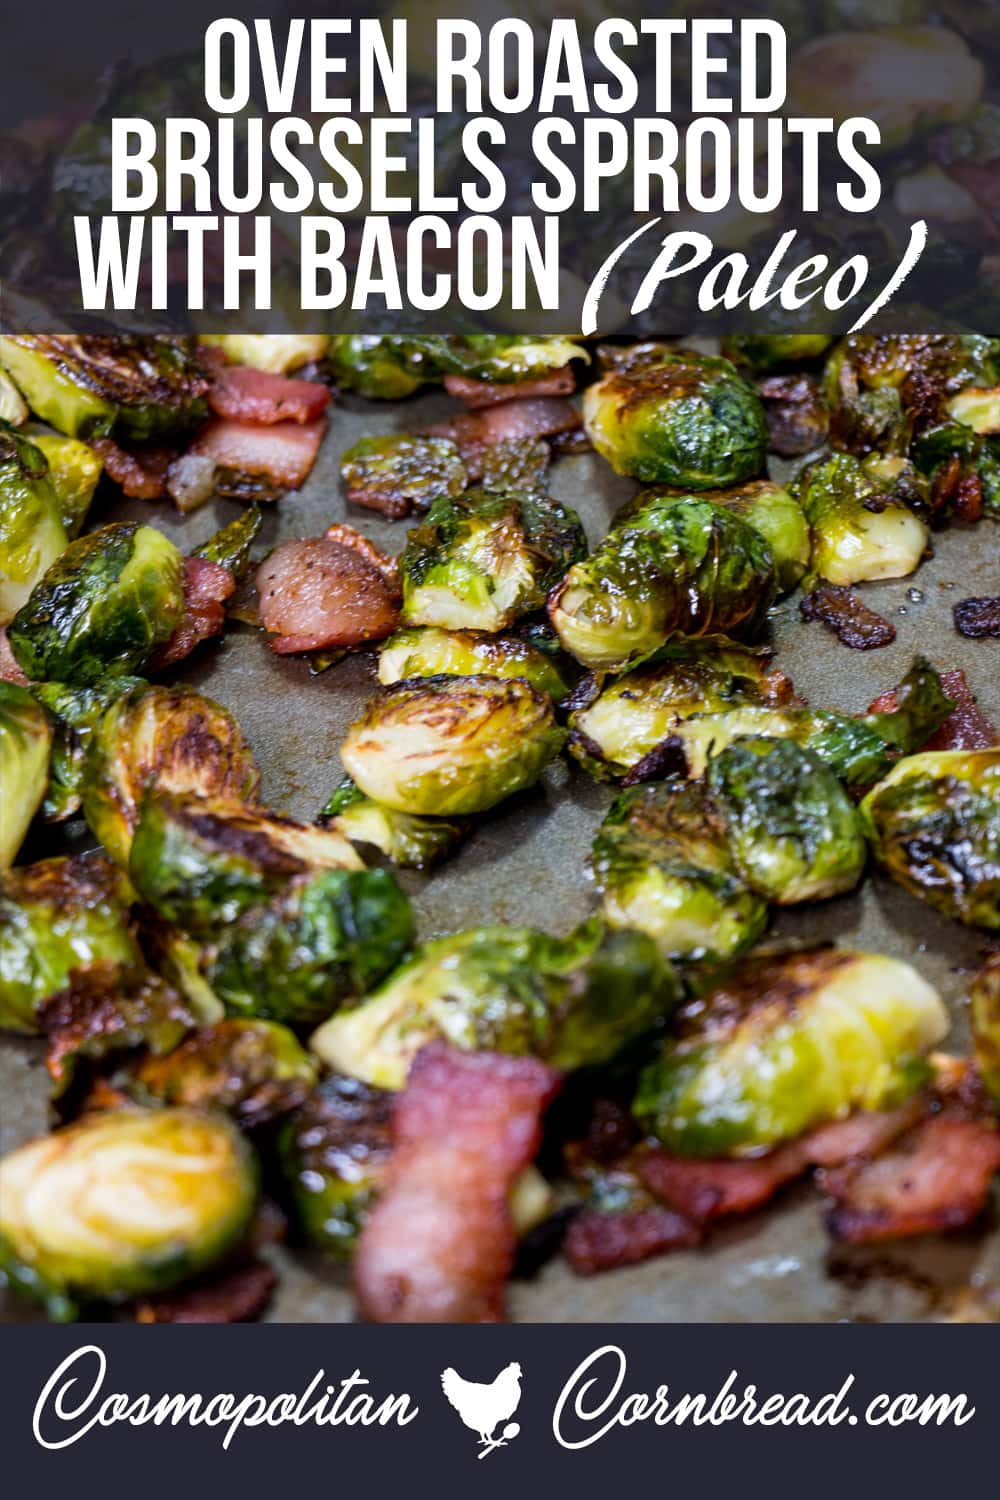 Roasted Brussels Sprouts with Bacon | This recipe is Low-Carb, Paleo and Keto friendly! Get the recipe from Cosmopolitan Cornbread